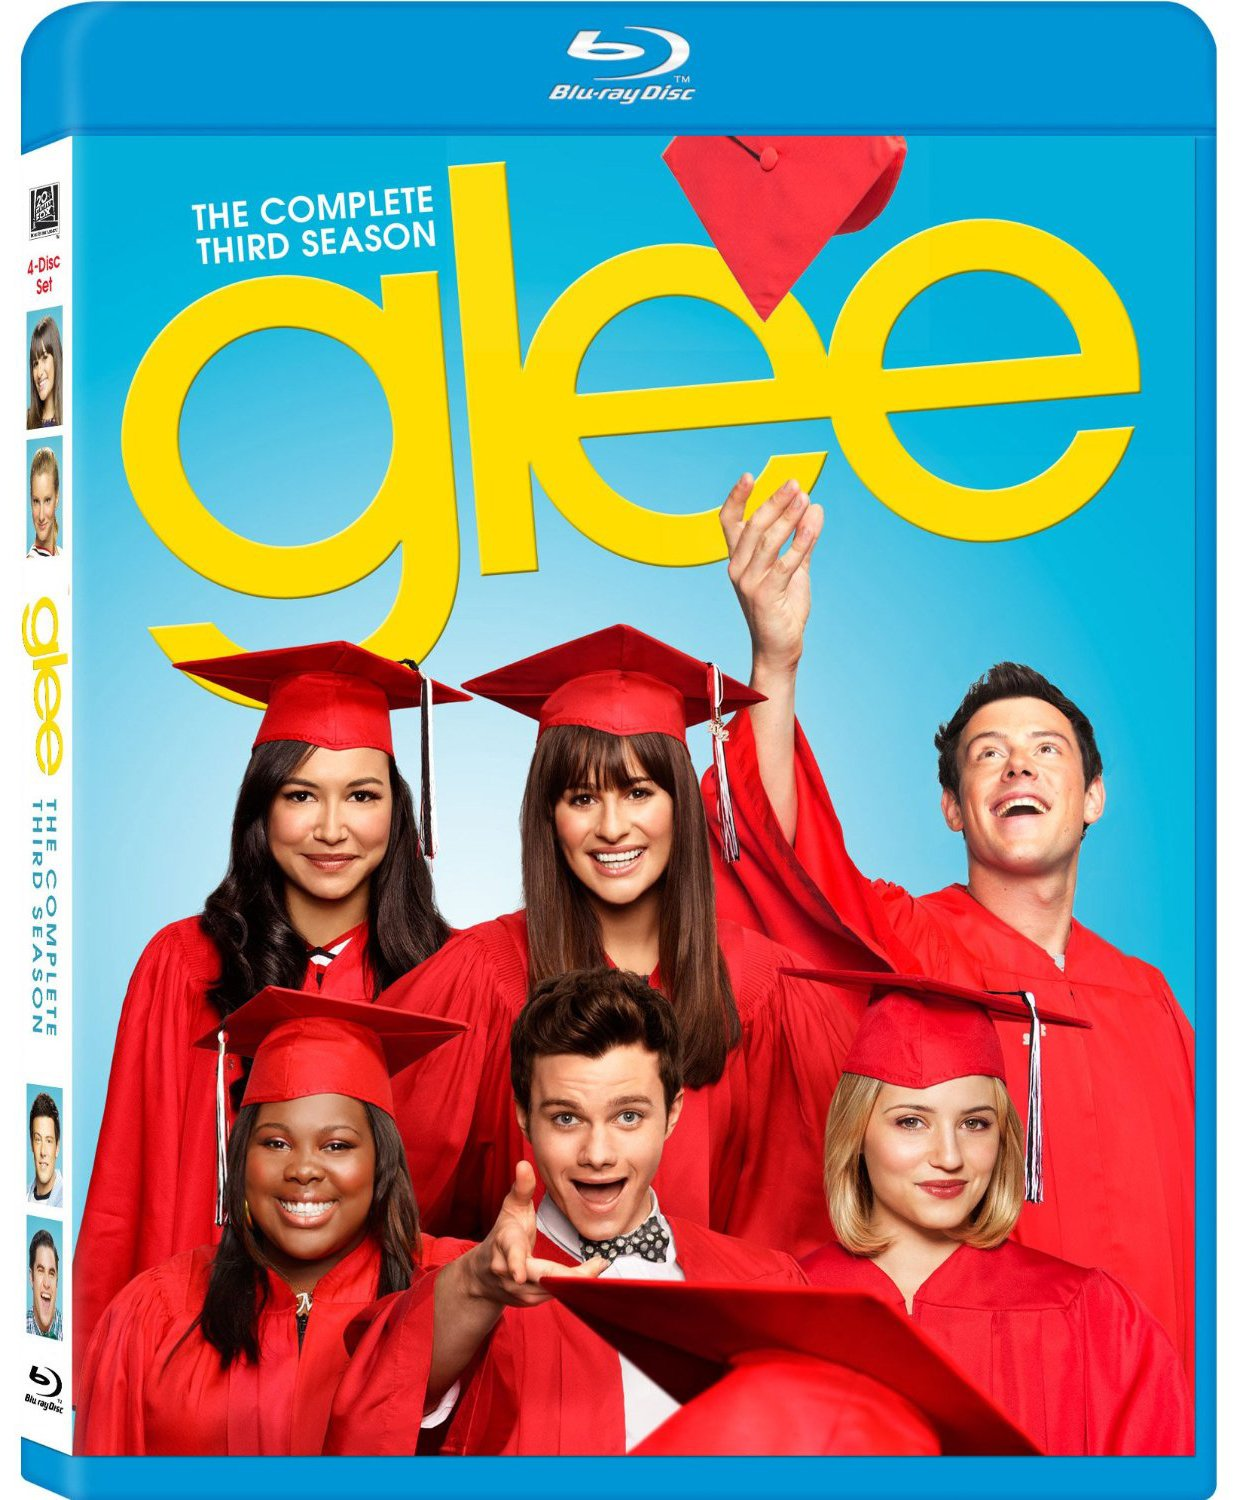 Glee Season 3 DVD and Blu-ray Extras and Features Revealed